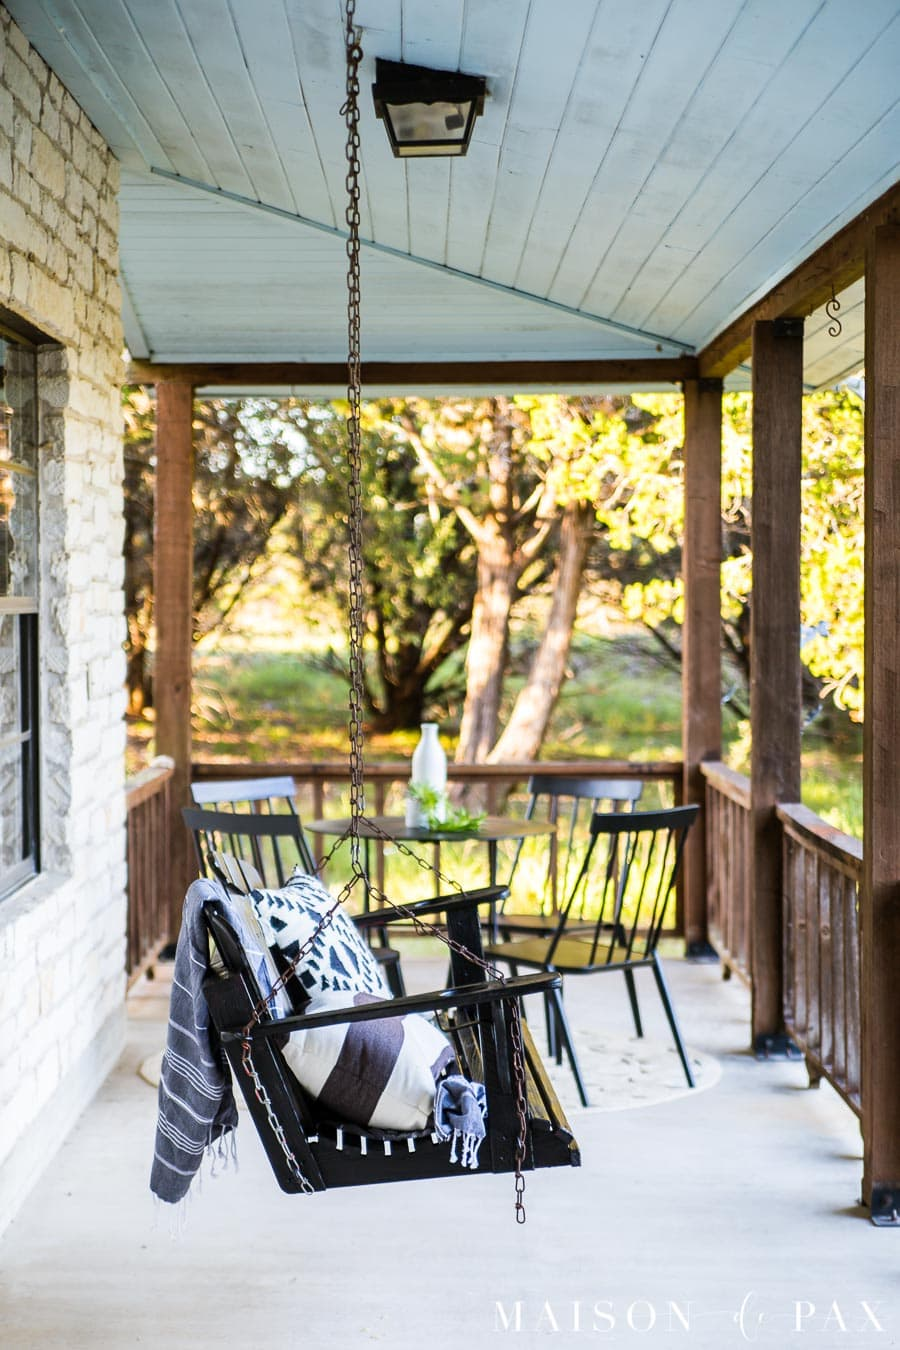 Texas hill country vacation home porch swing | Maison de Pax